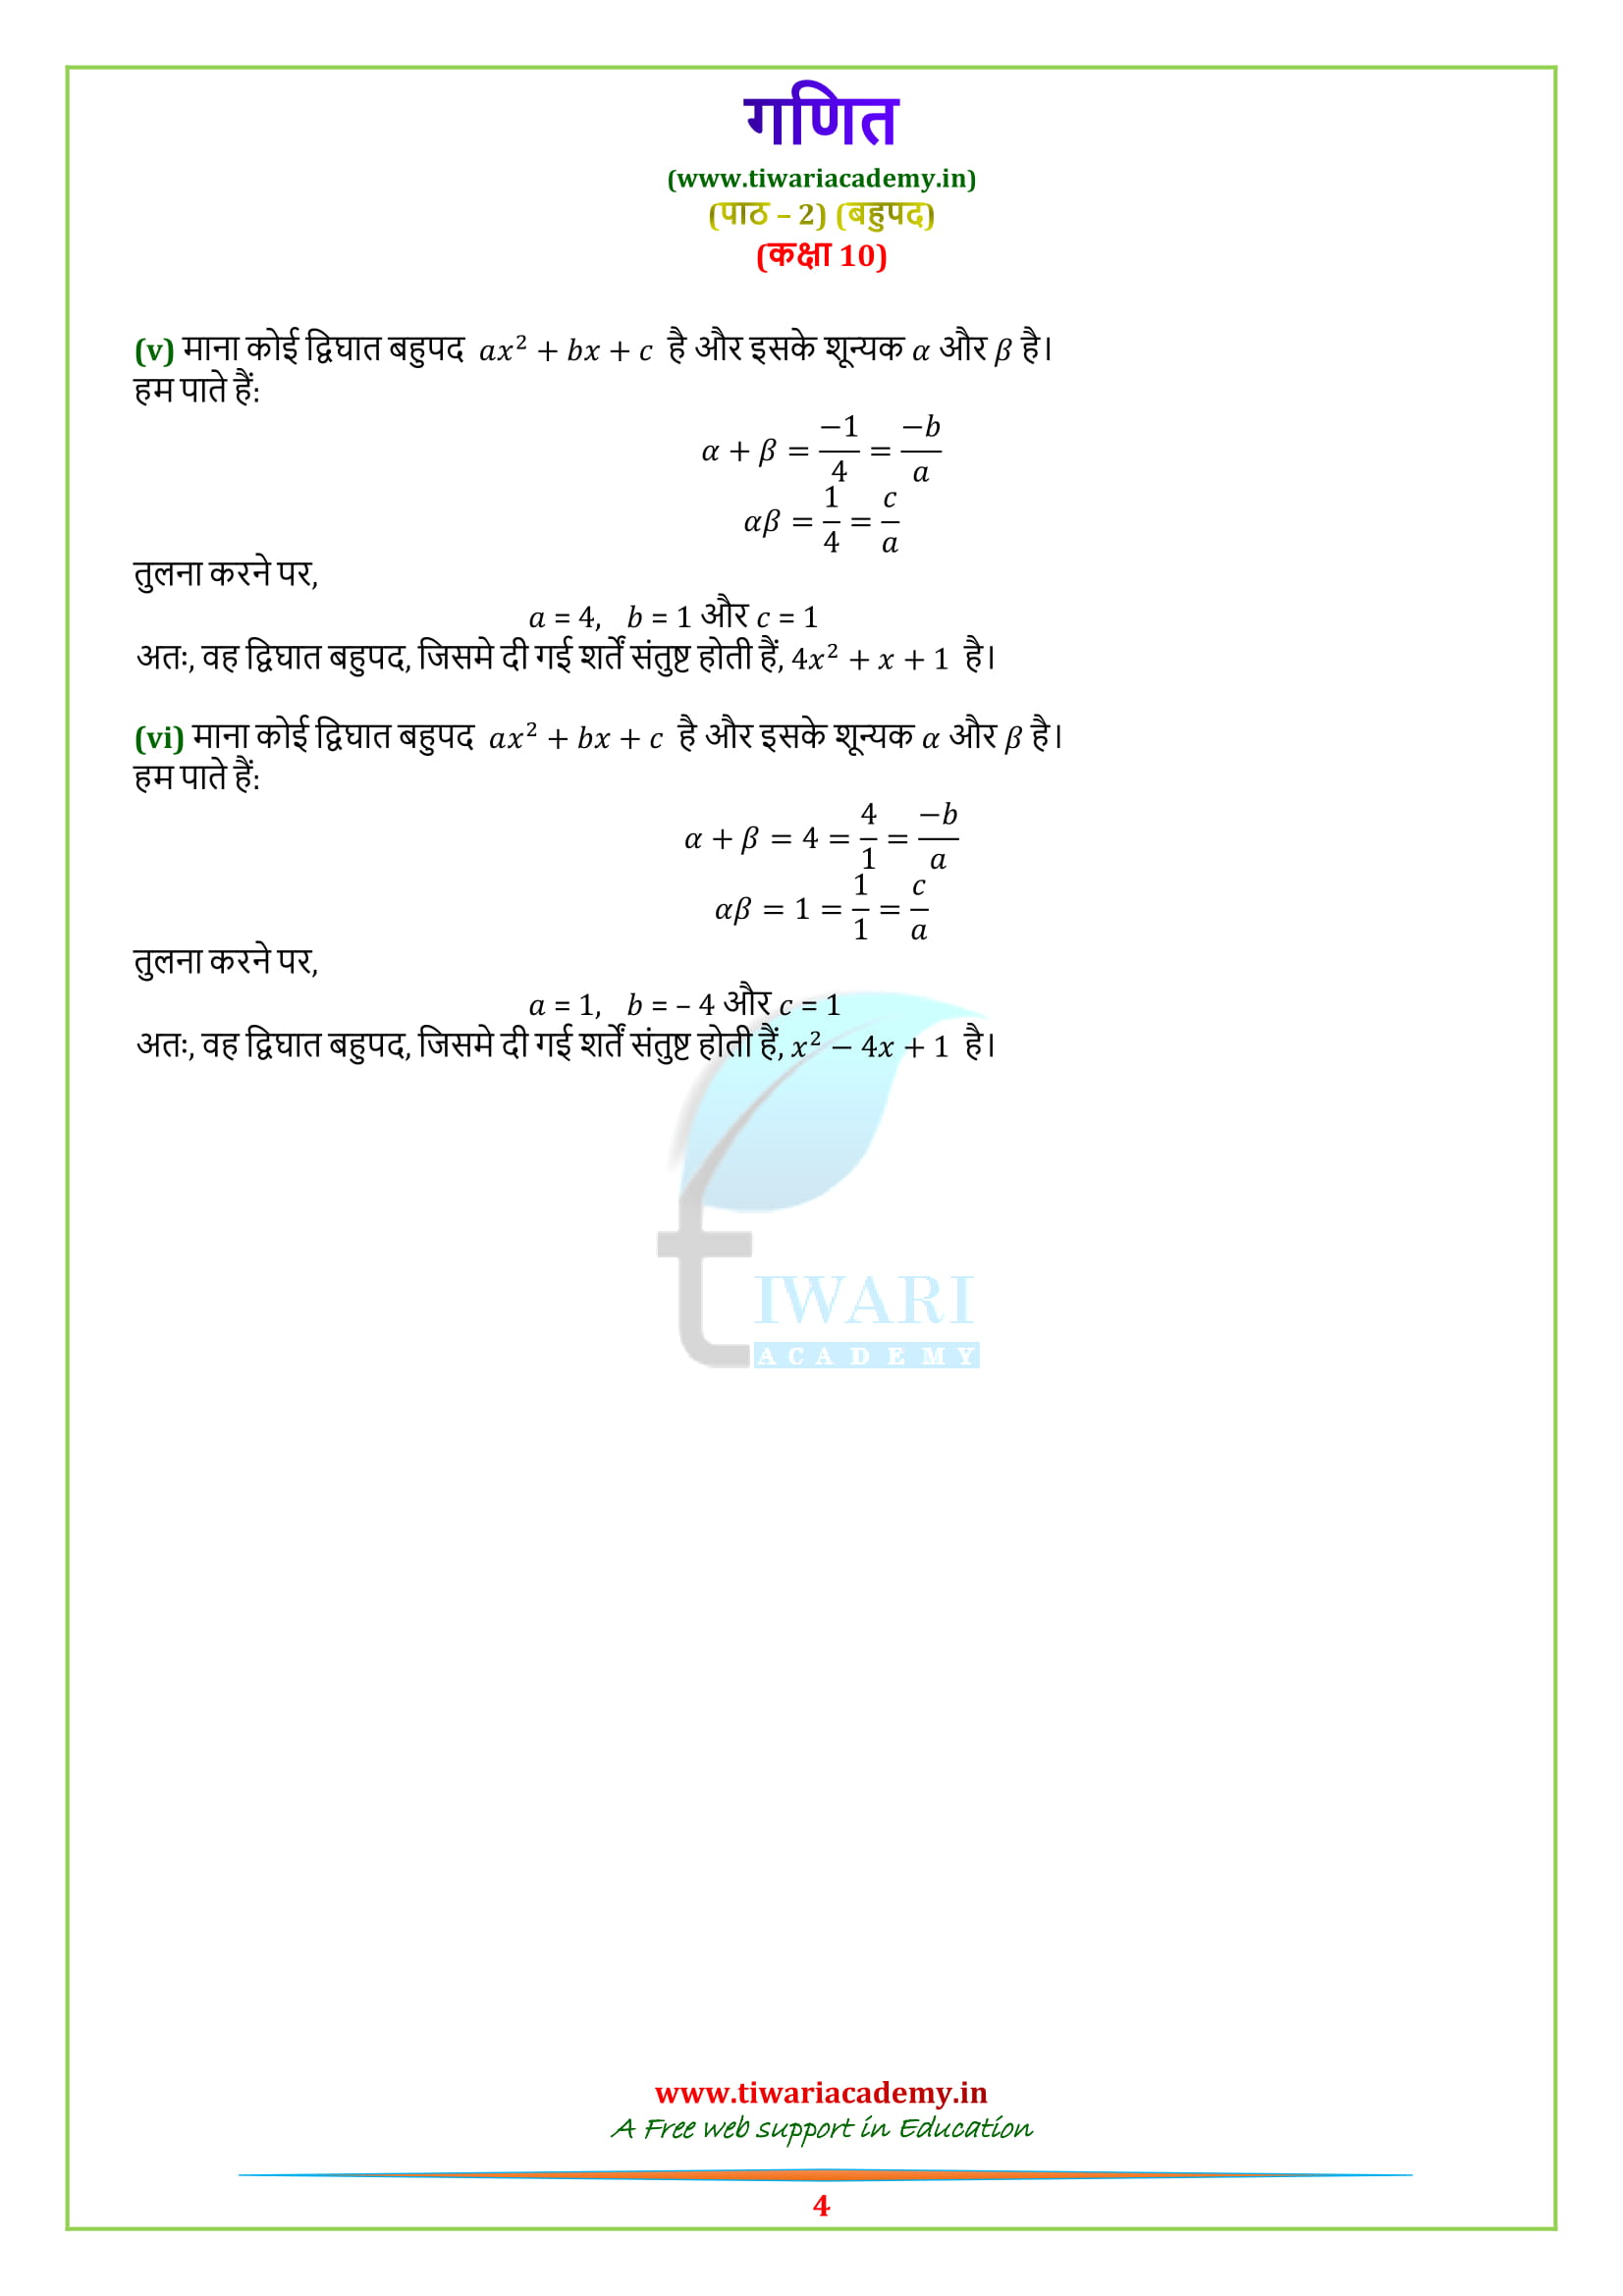 NCERT Solutions for class 10 maths Exercise 2.2 question 2 in hindi